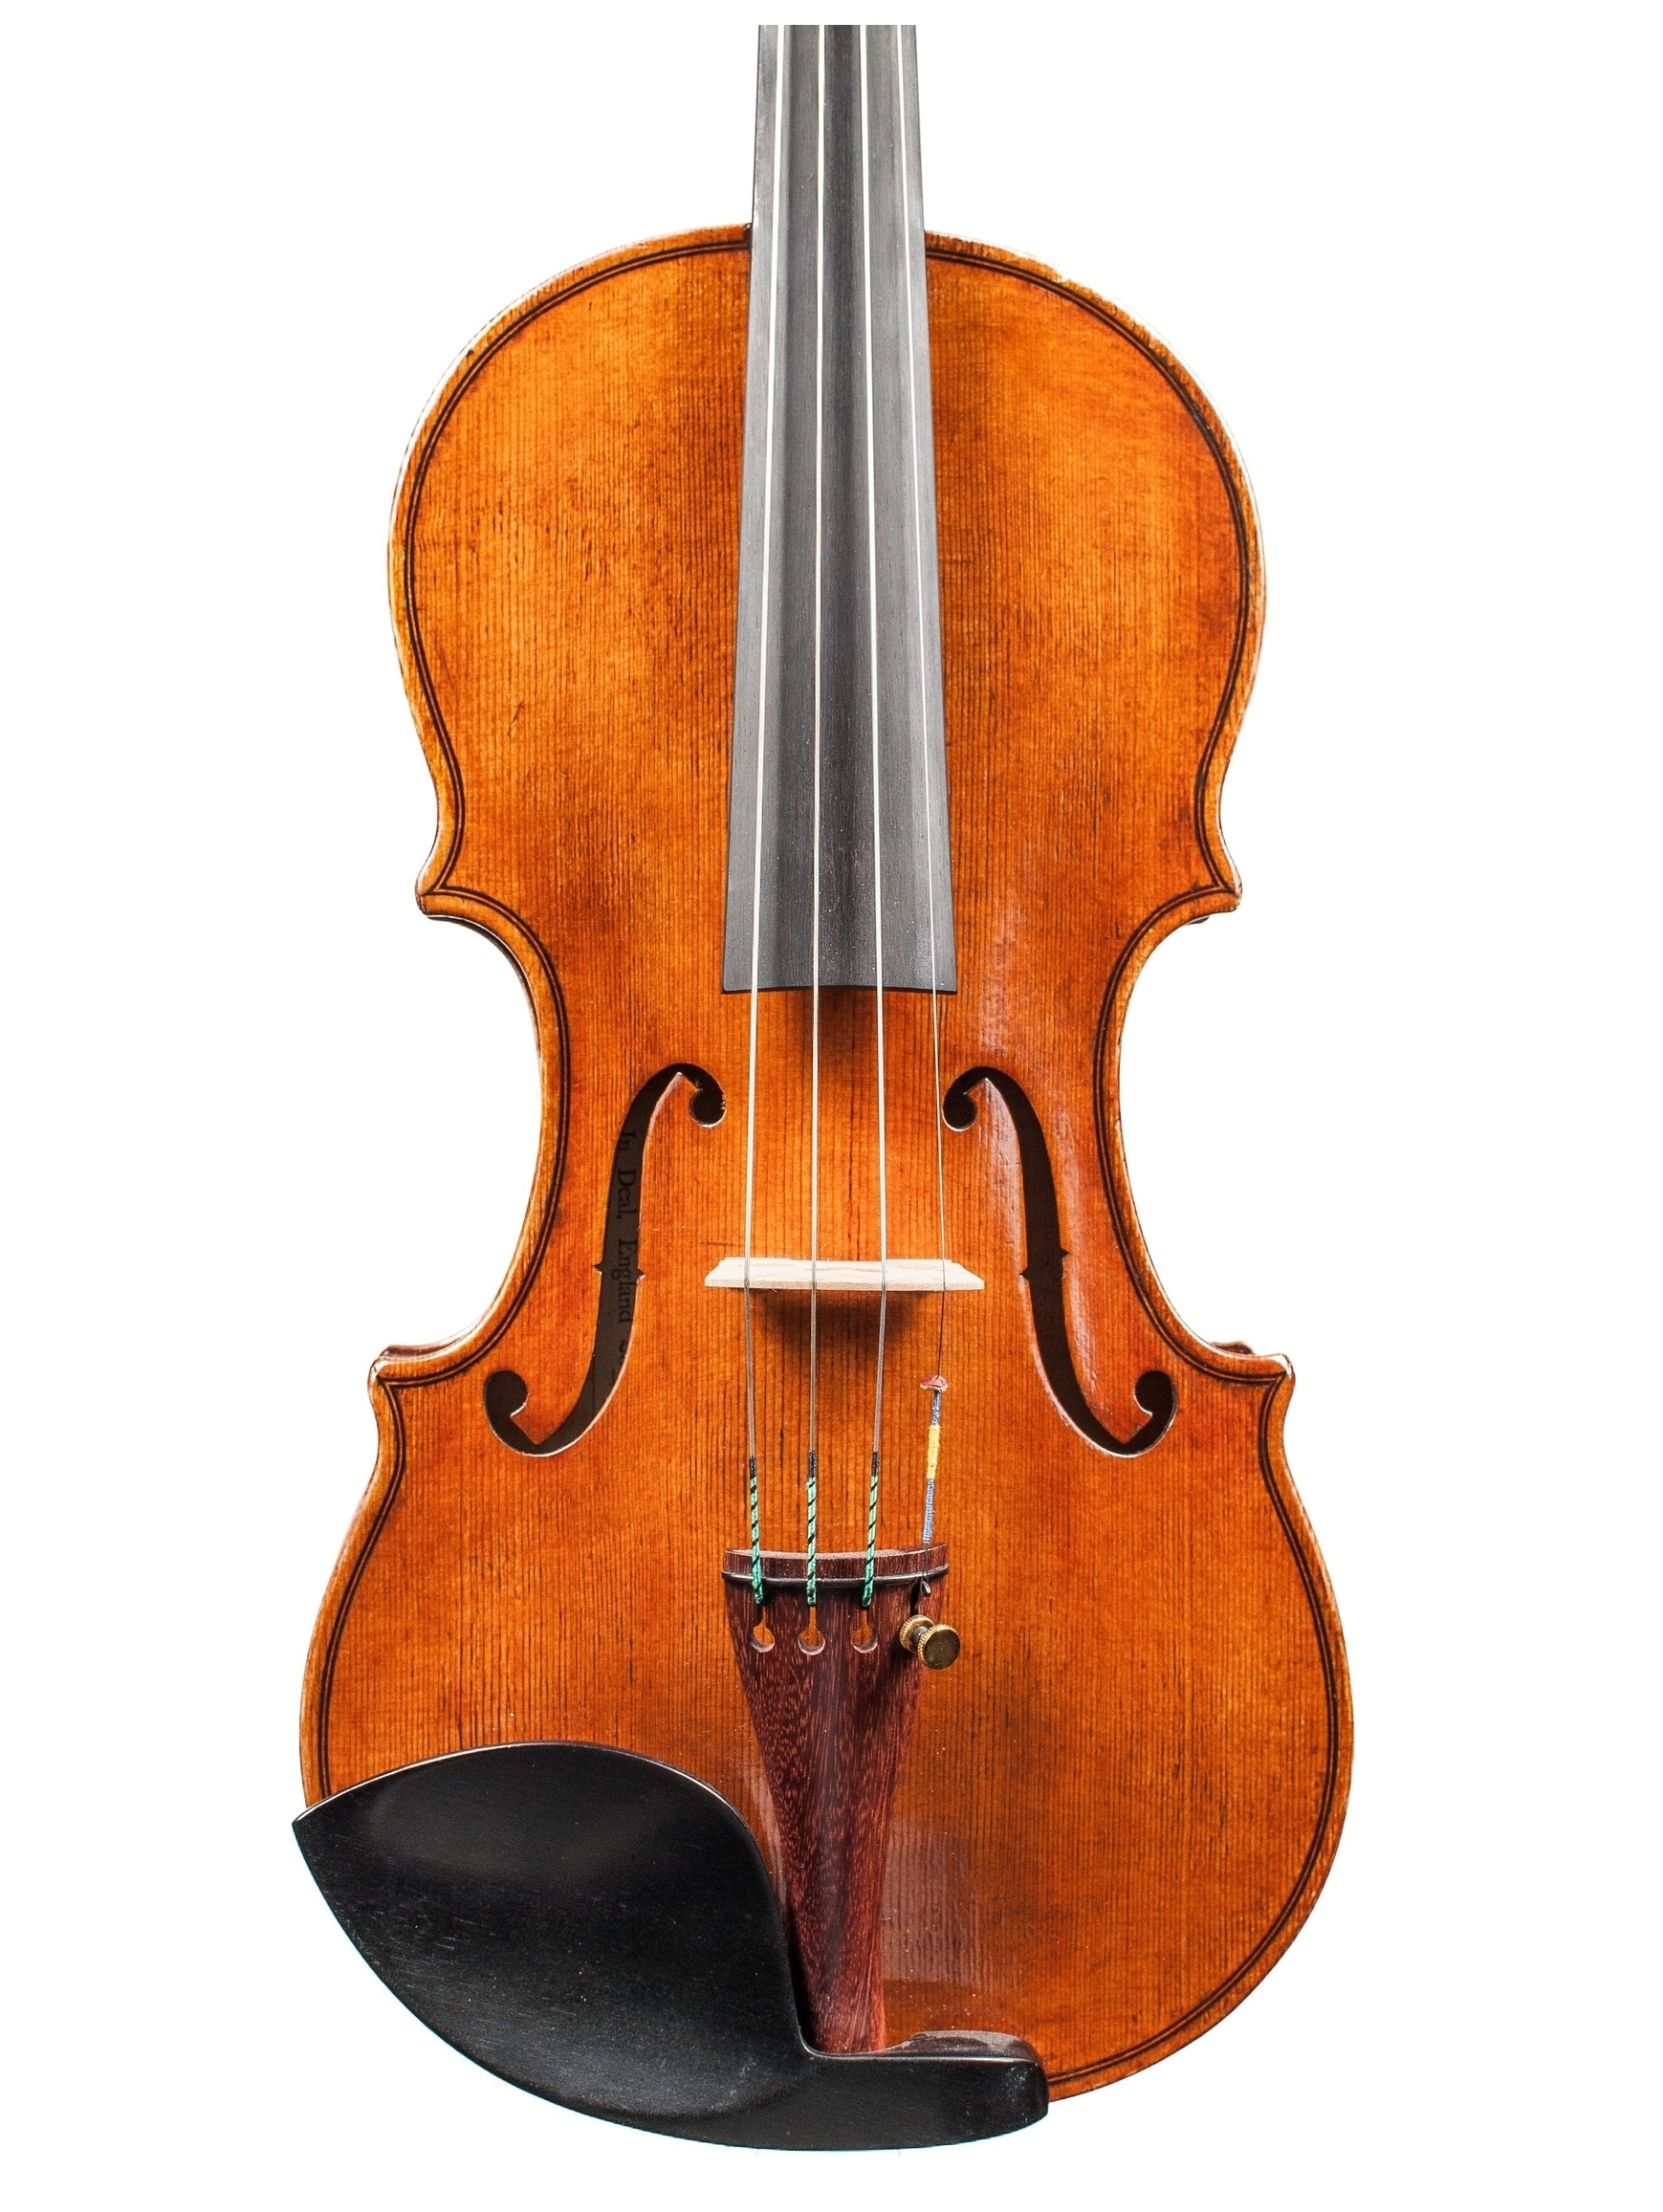 7/8 Violin by Colin Cross, 2019